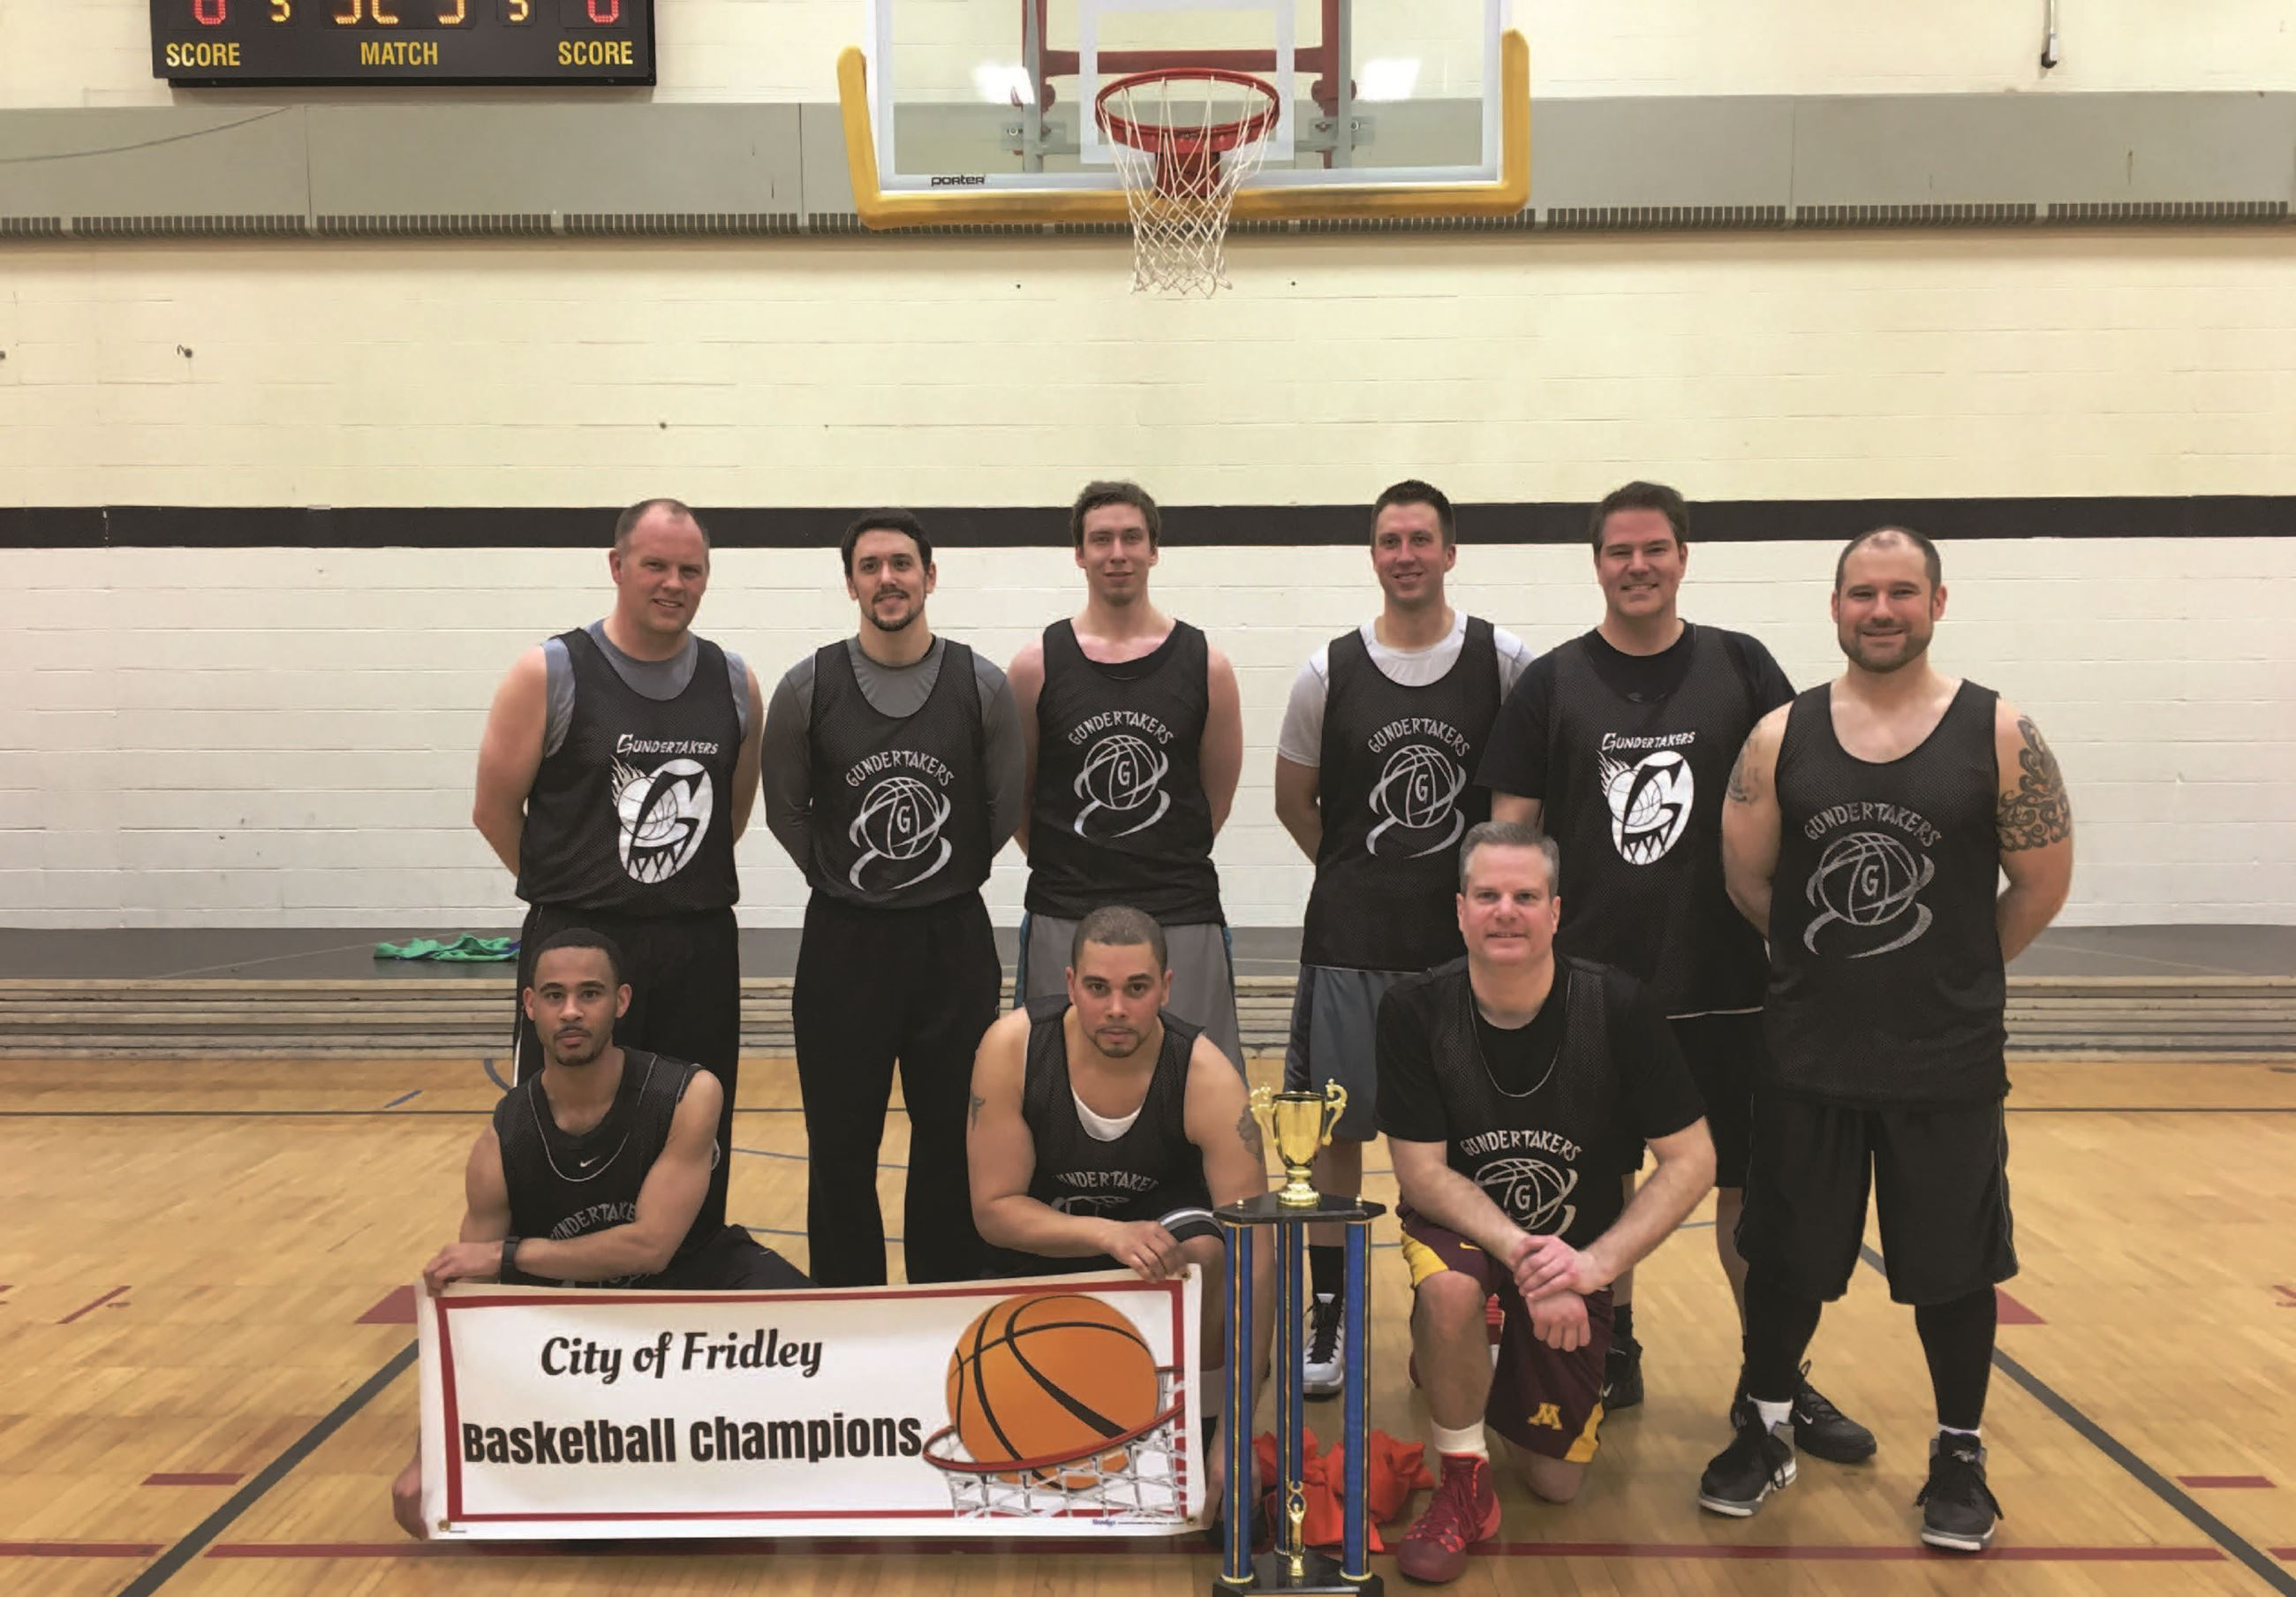 2016 BASKETBALL CHAMPS